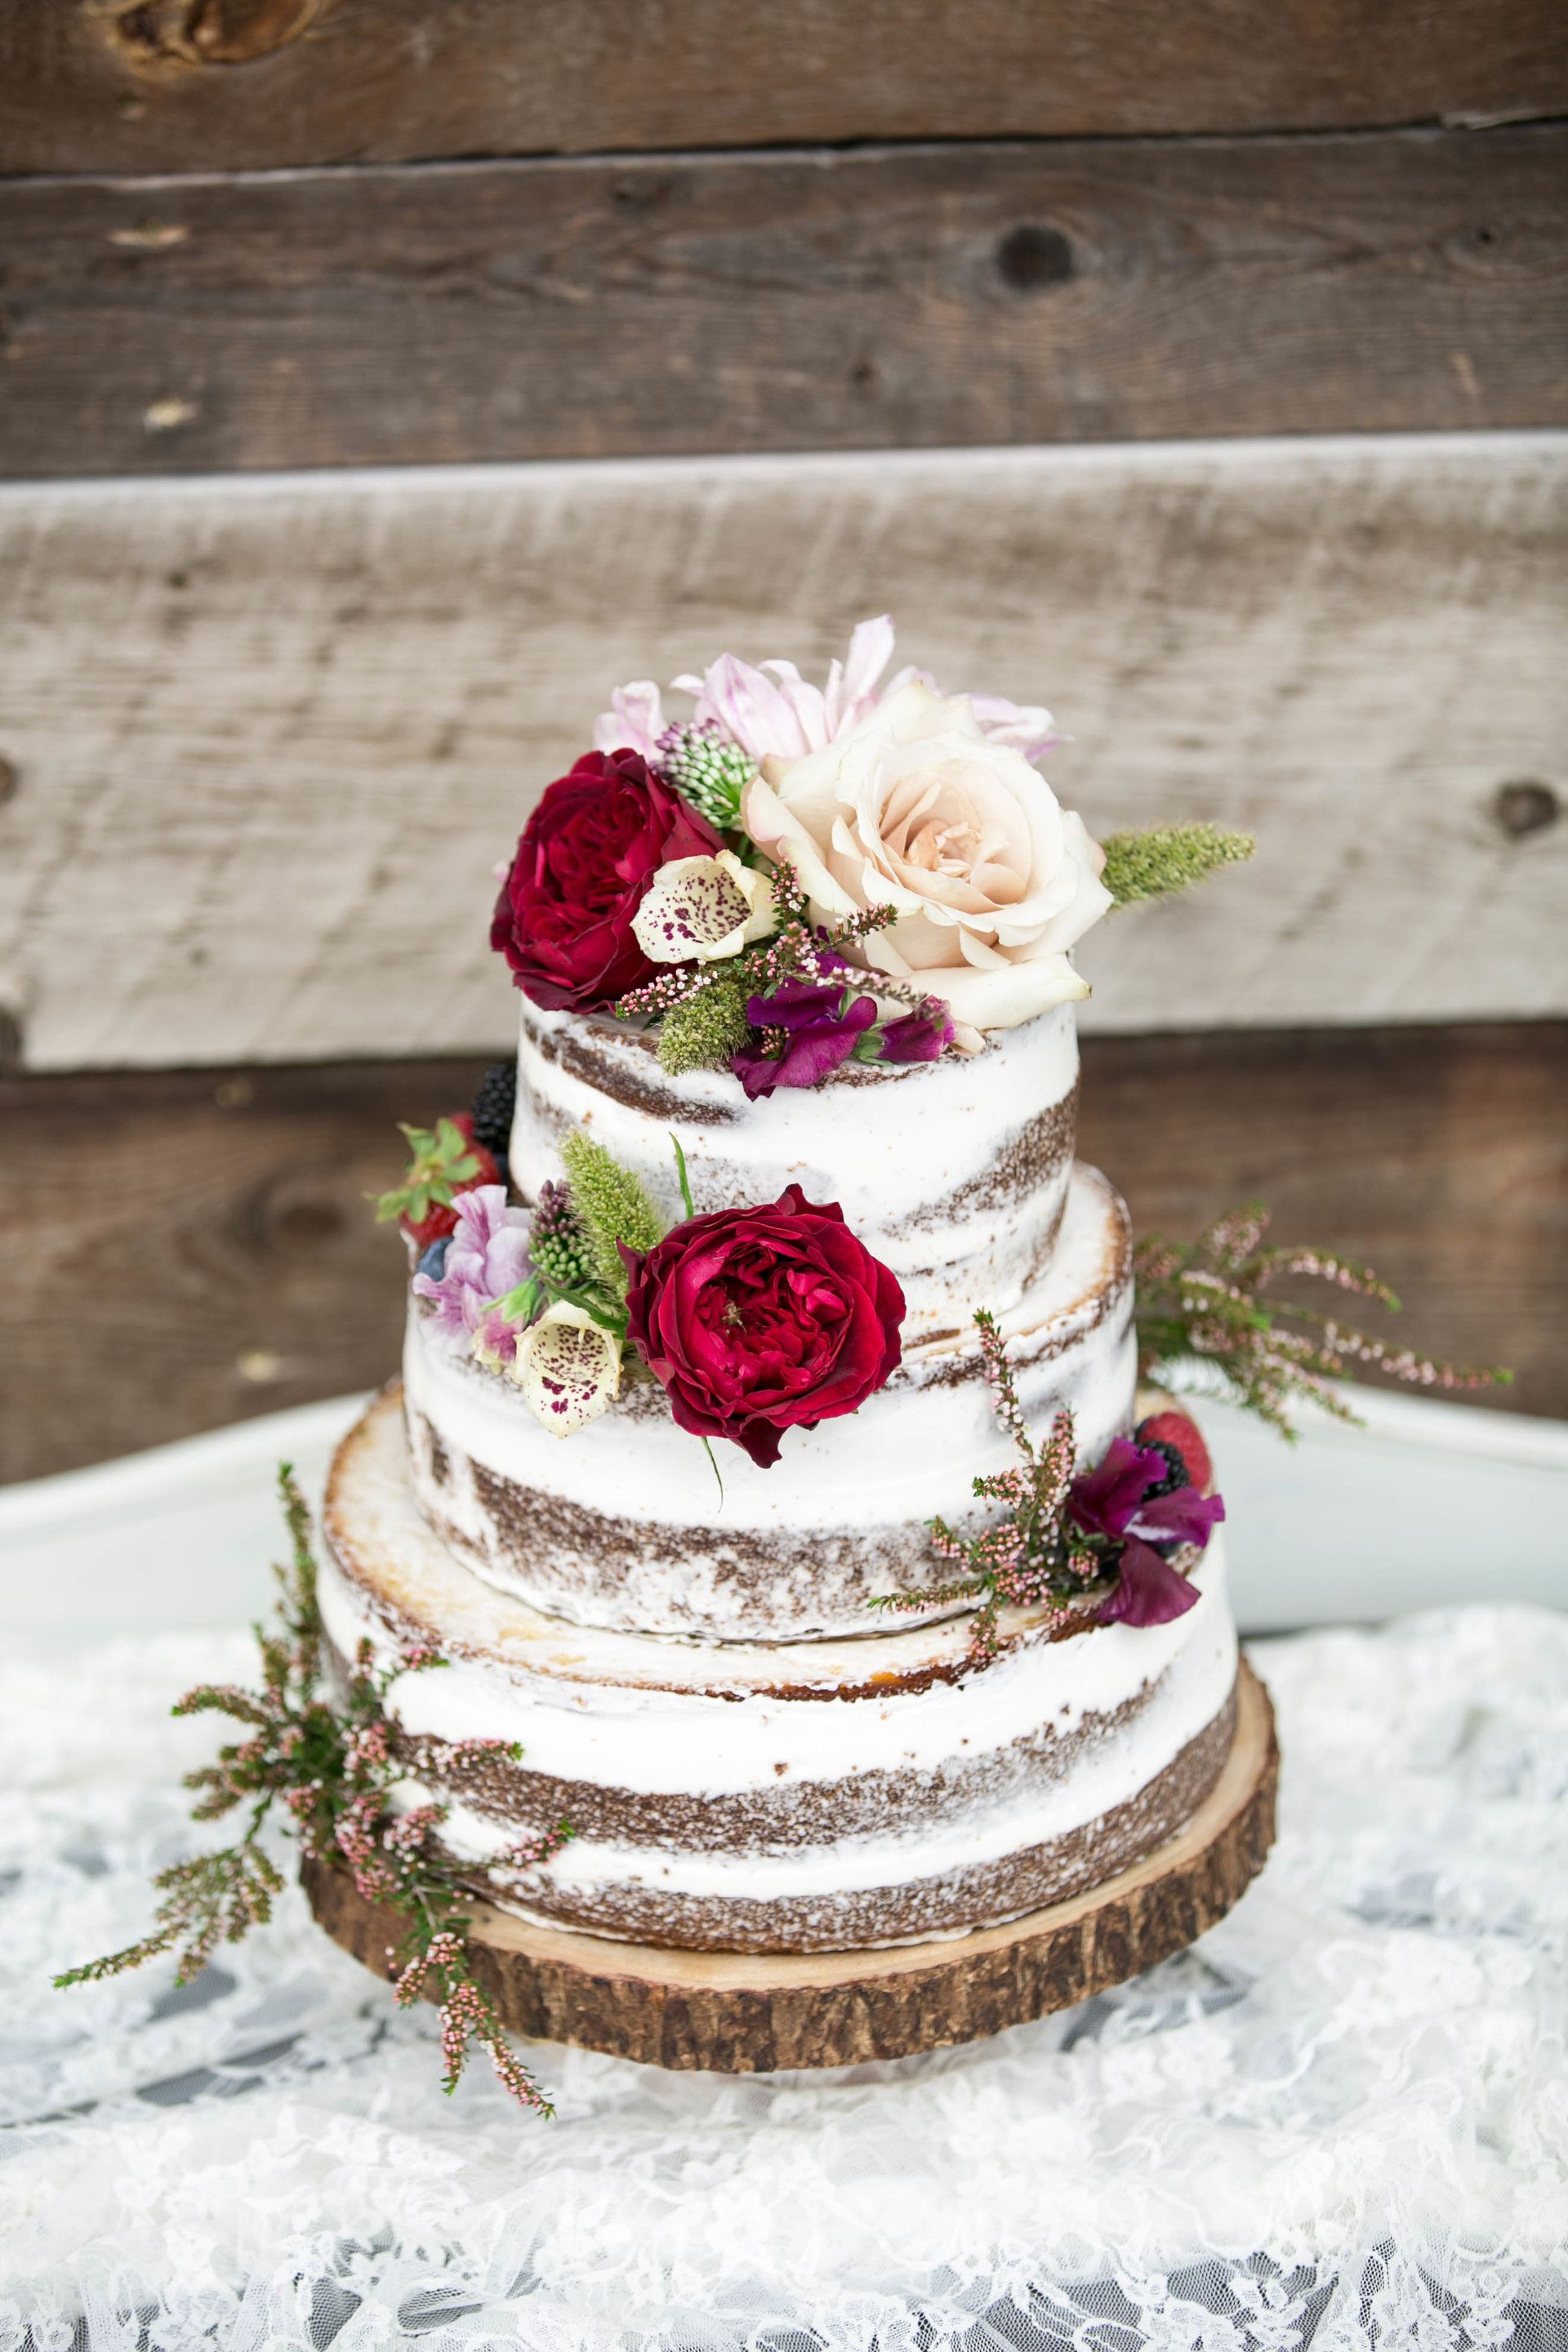 Cake Rustic Fl Topper Red And Cream Flowers Natural Wedding